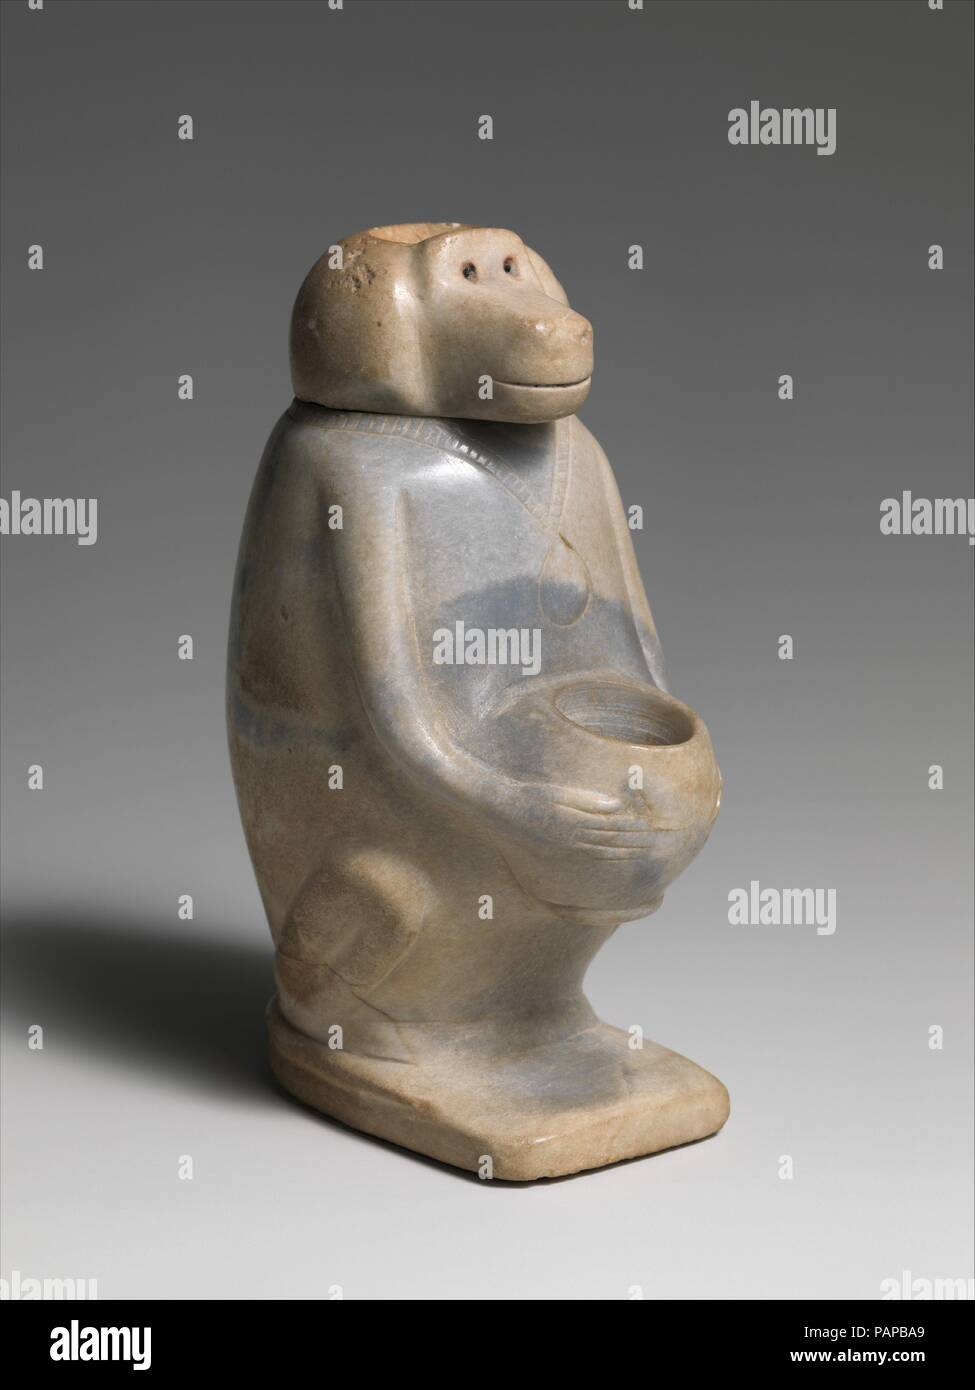 Ointment jar in the shape of a baboon. Dimensions: H. 13.3 cm (5 1/4 in.); W. 5.9 cm (2 5/16 in.); D. 8.2 cm (3 1/4 in.). Dynasty: Dynasty 13-17. Date: ca. 1800-1550 B.C.. Museum: Metropolitan Museum of Art, New York, USA. - Stock Image